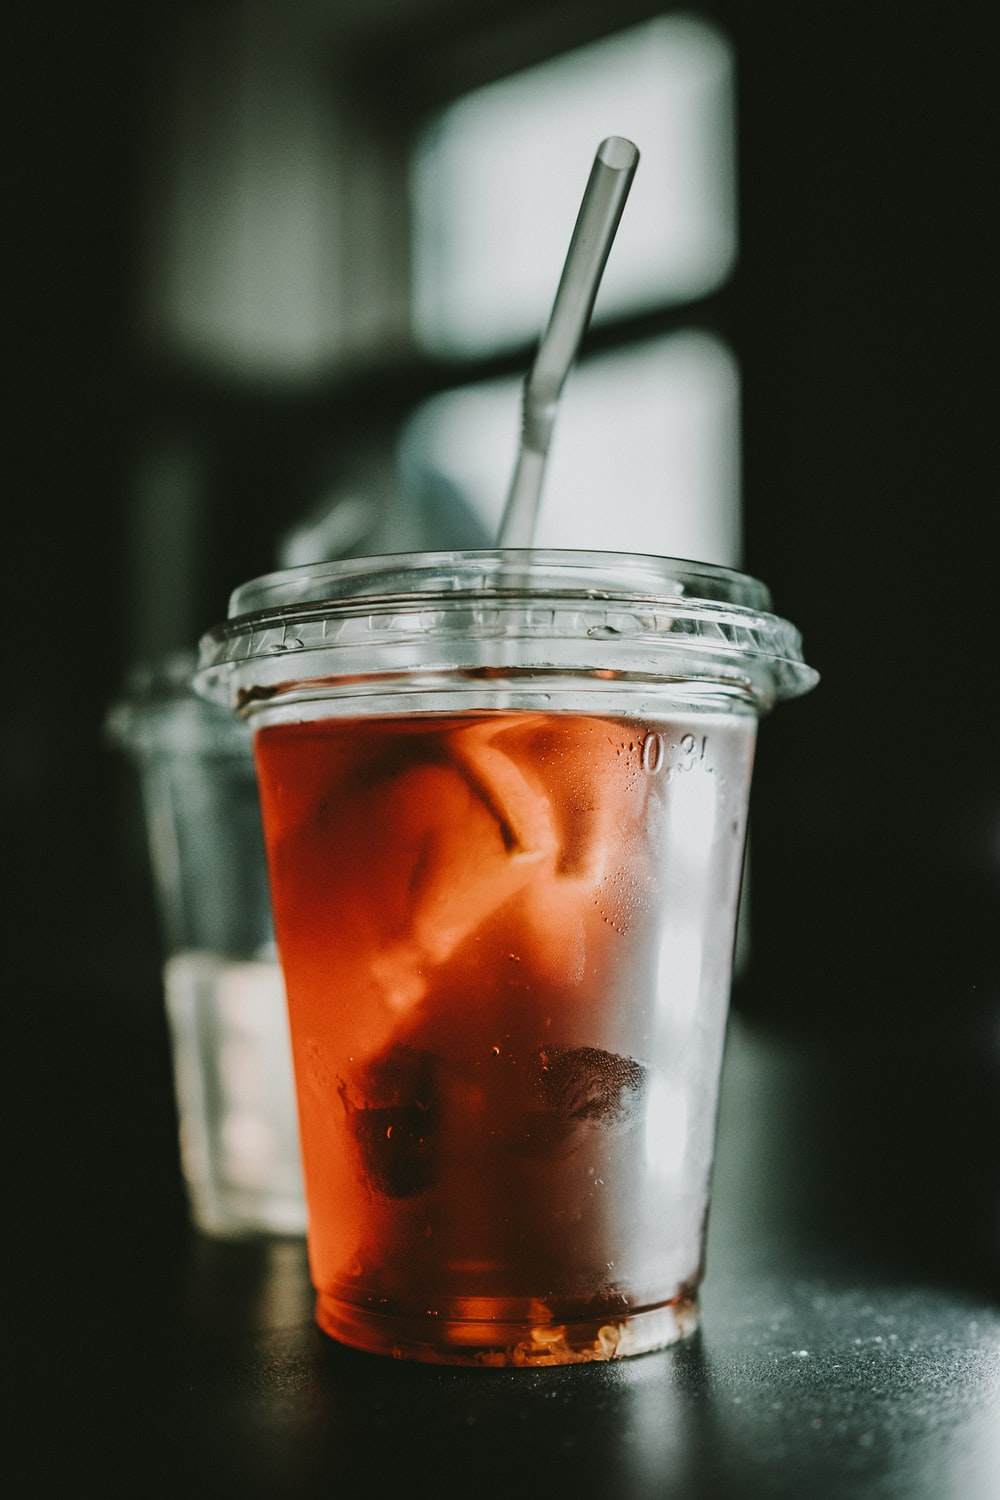 selective focus photo of clear disposable cup with red liquid